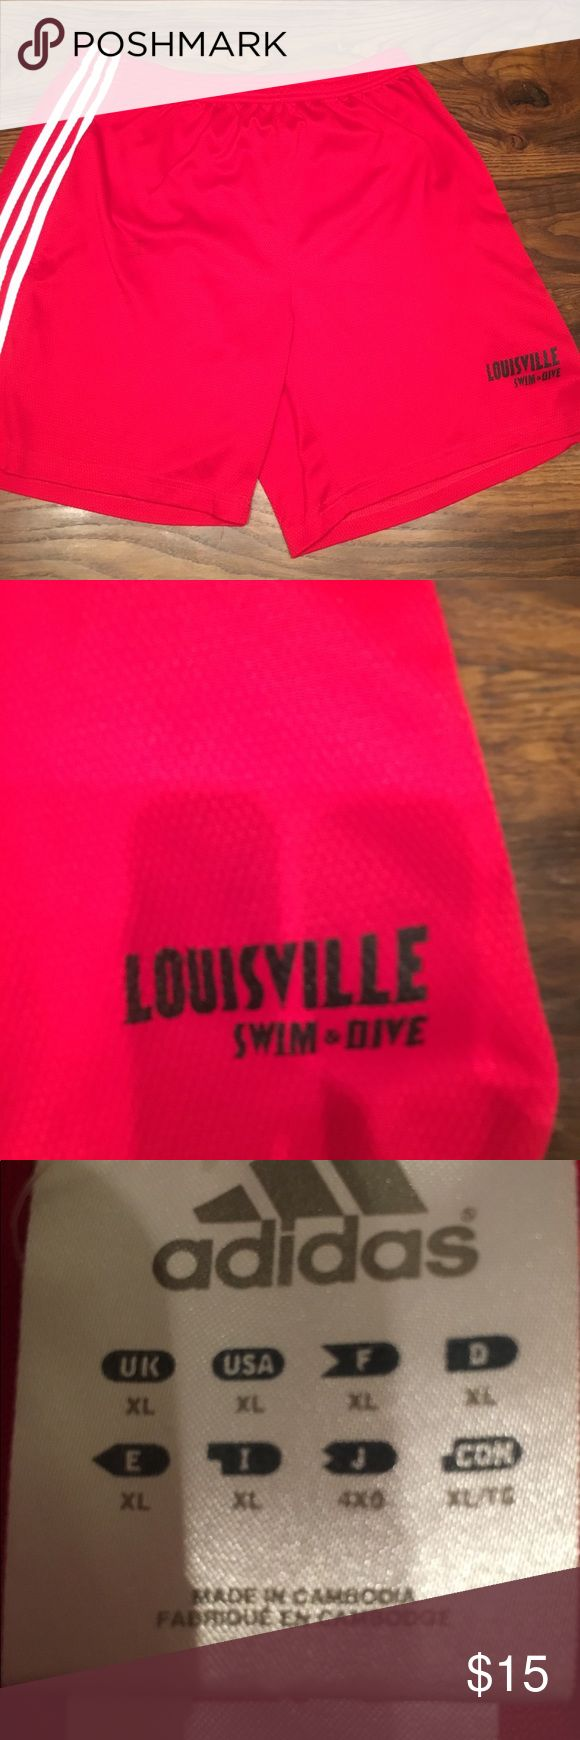 NWOT Men's Adidas Red Shorts XL Louisville swimming and diving adidas Shorts Athletic